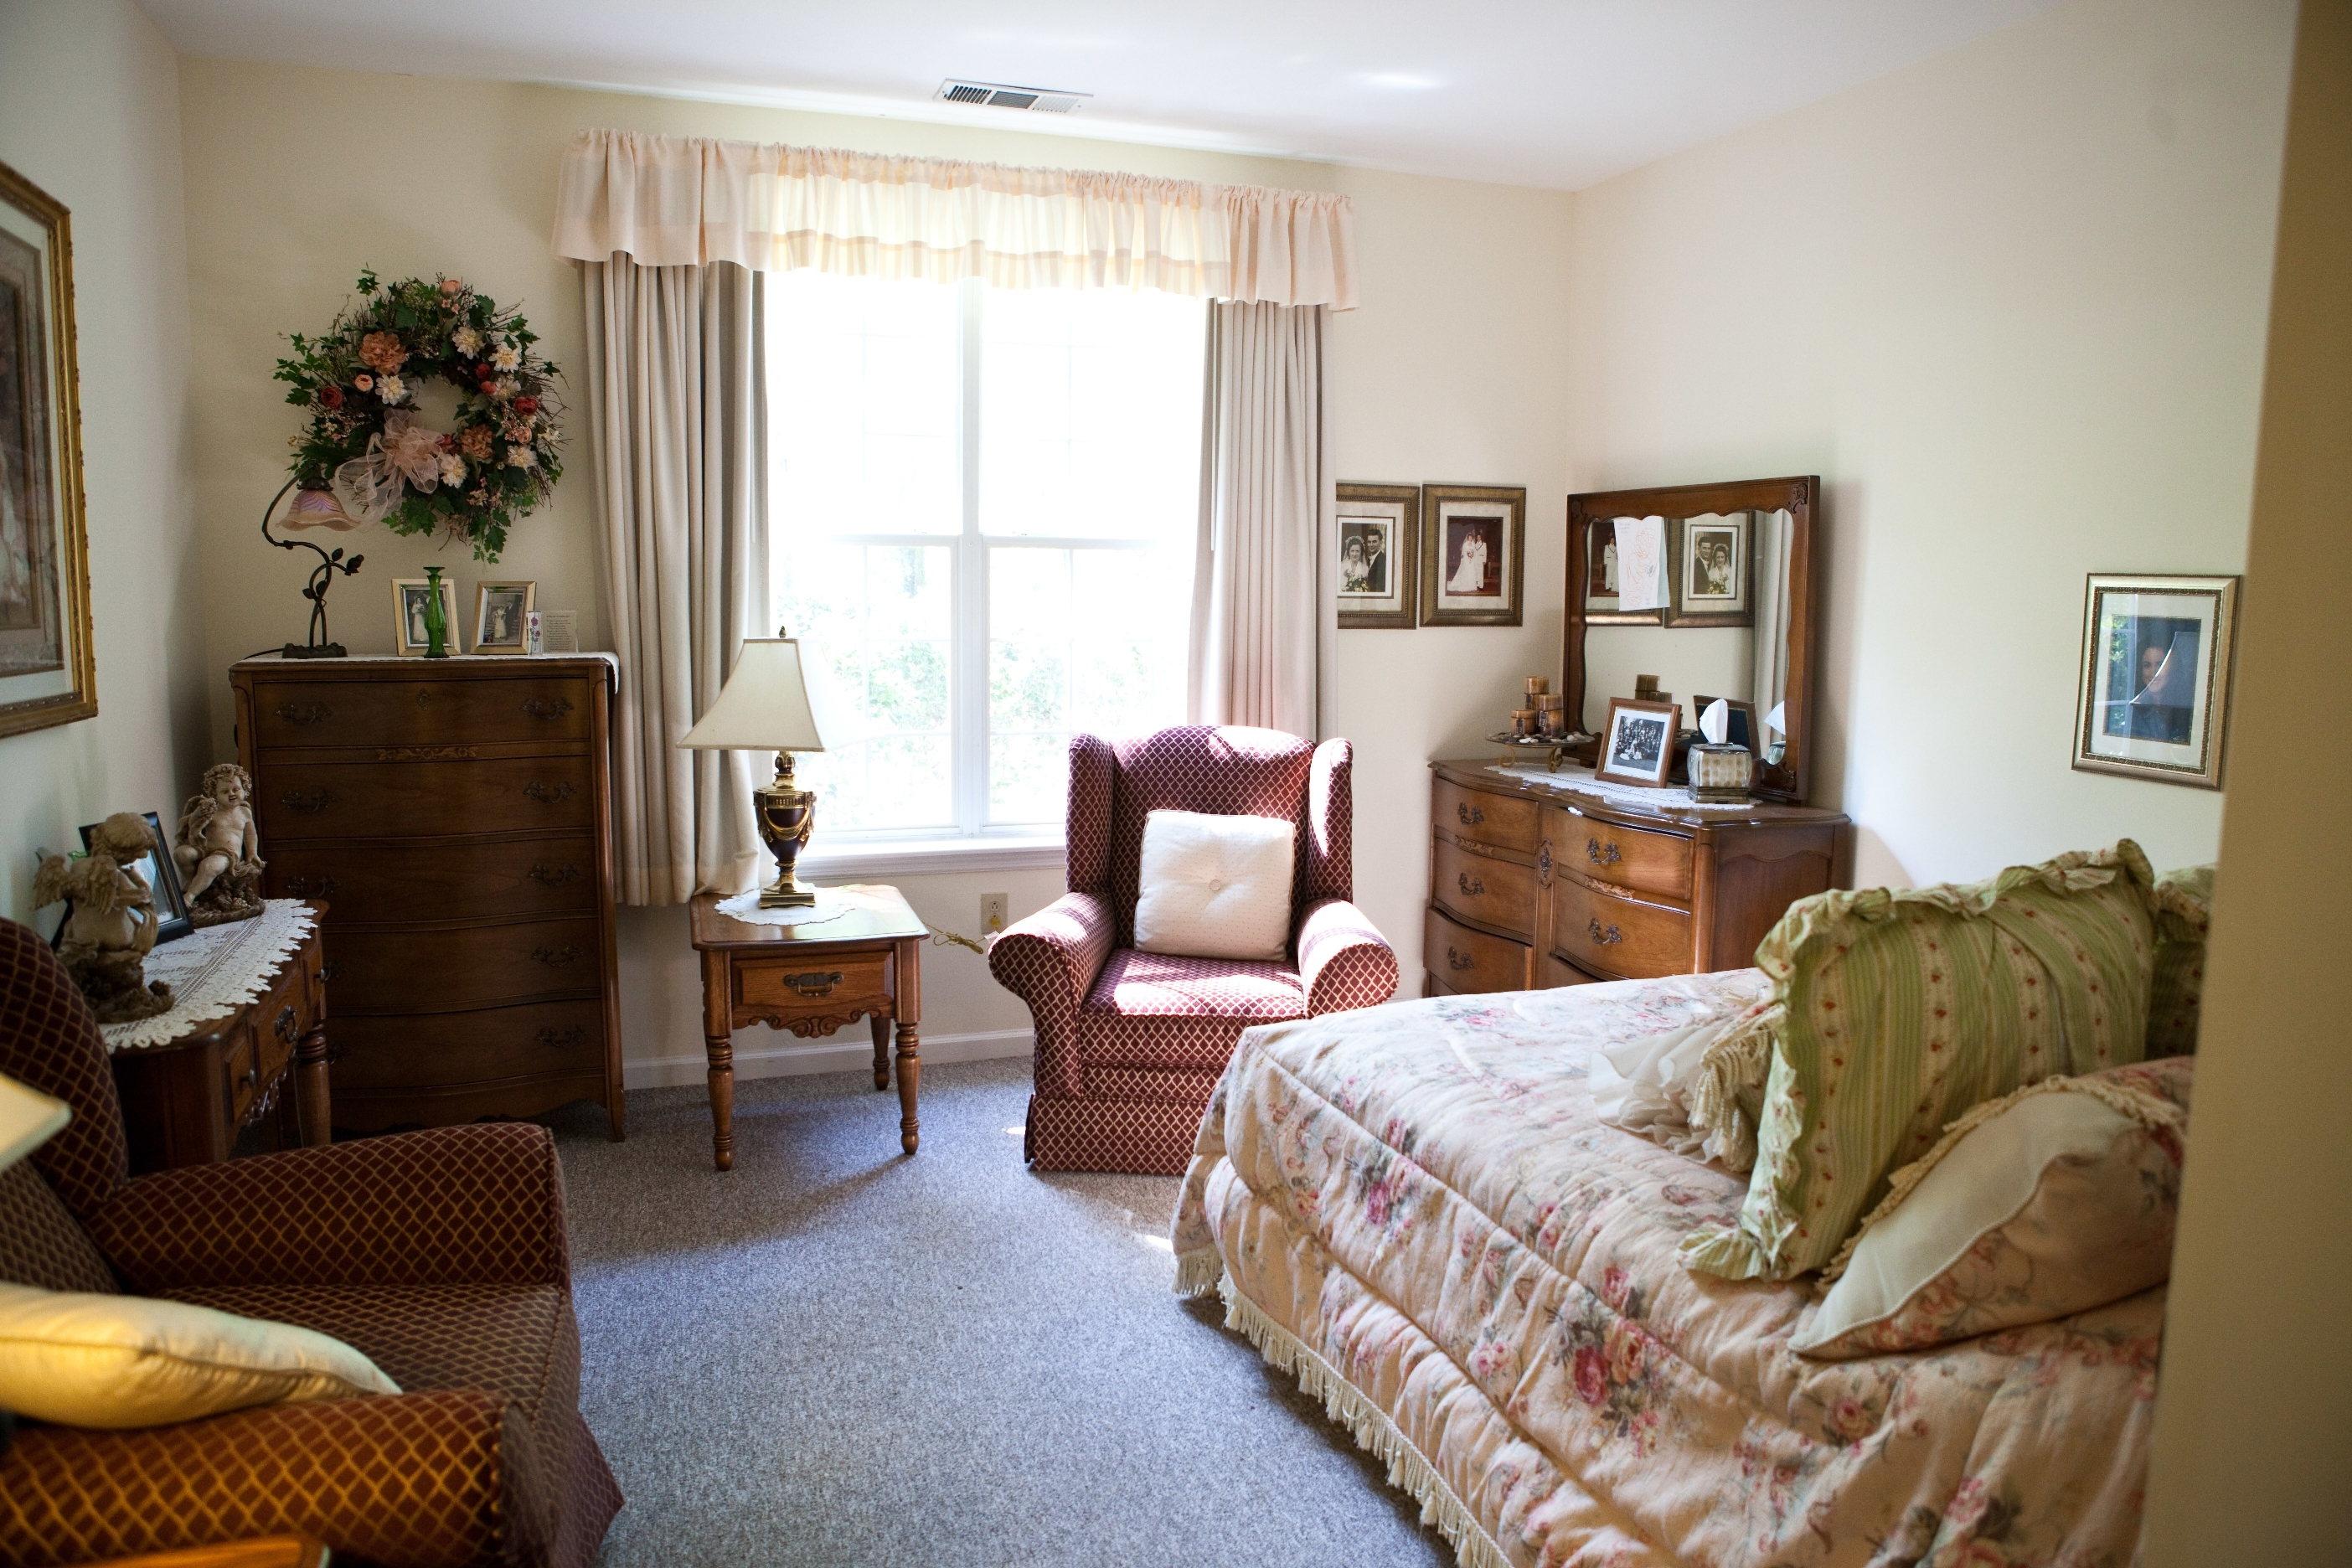 The Hills of Cumberland Village - A Marrinson Senior Care Residence image 1